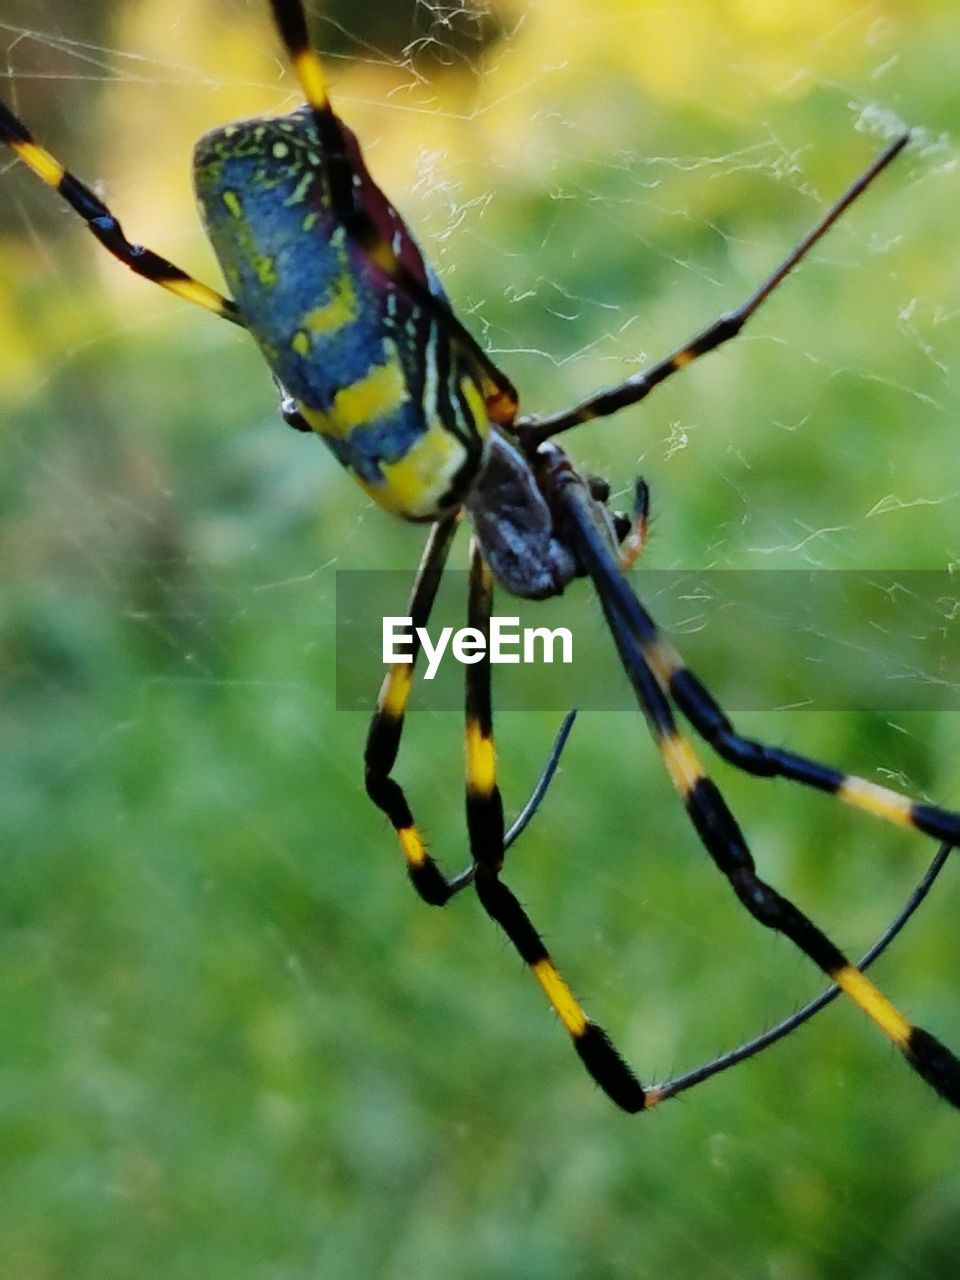 one animal, spider web, animal themes, animals in the wild, spider, insect, focus on foreground, close-up, nature, no people, animal wildlife, web, outdoors, day, animal leg